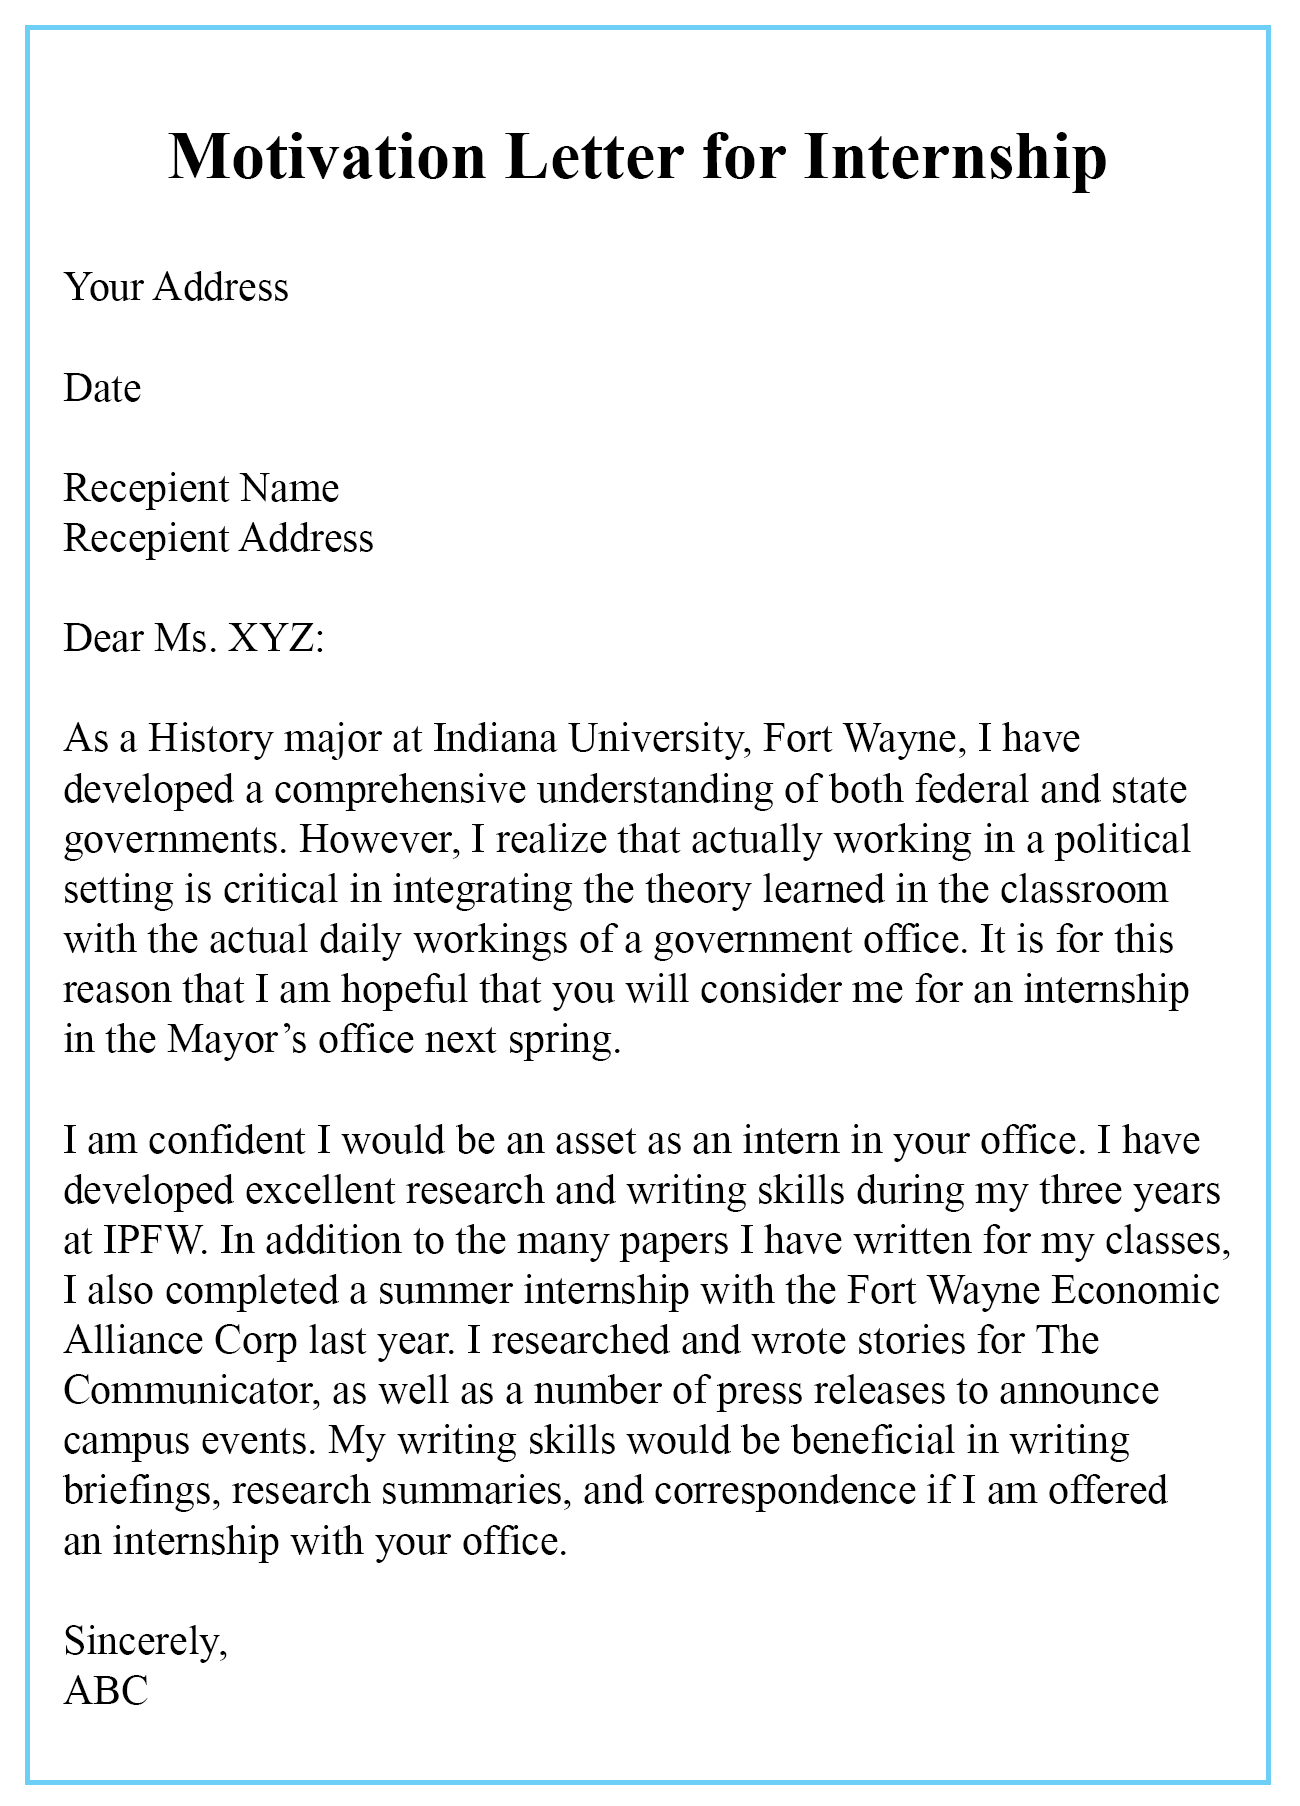 motivation letter for research internship  4+ Free Sample Motivation Letter for Internship Templates😄 - motivation letter for research internship